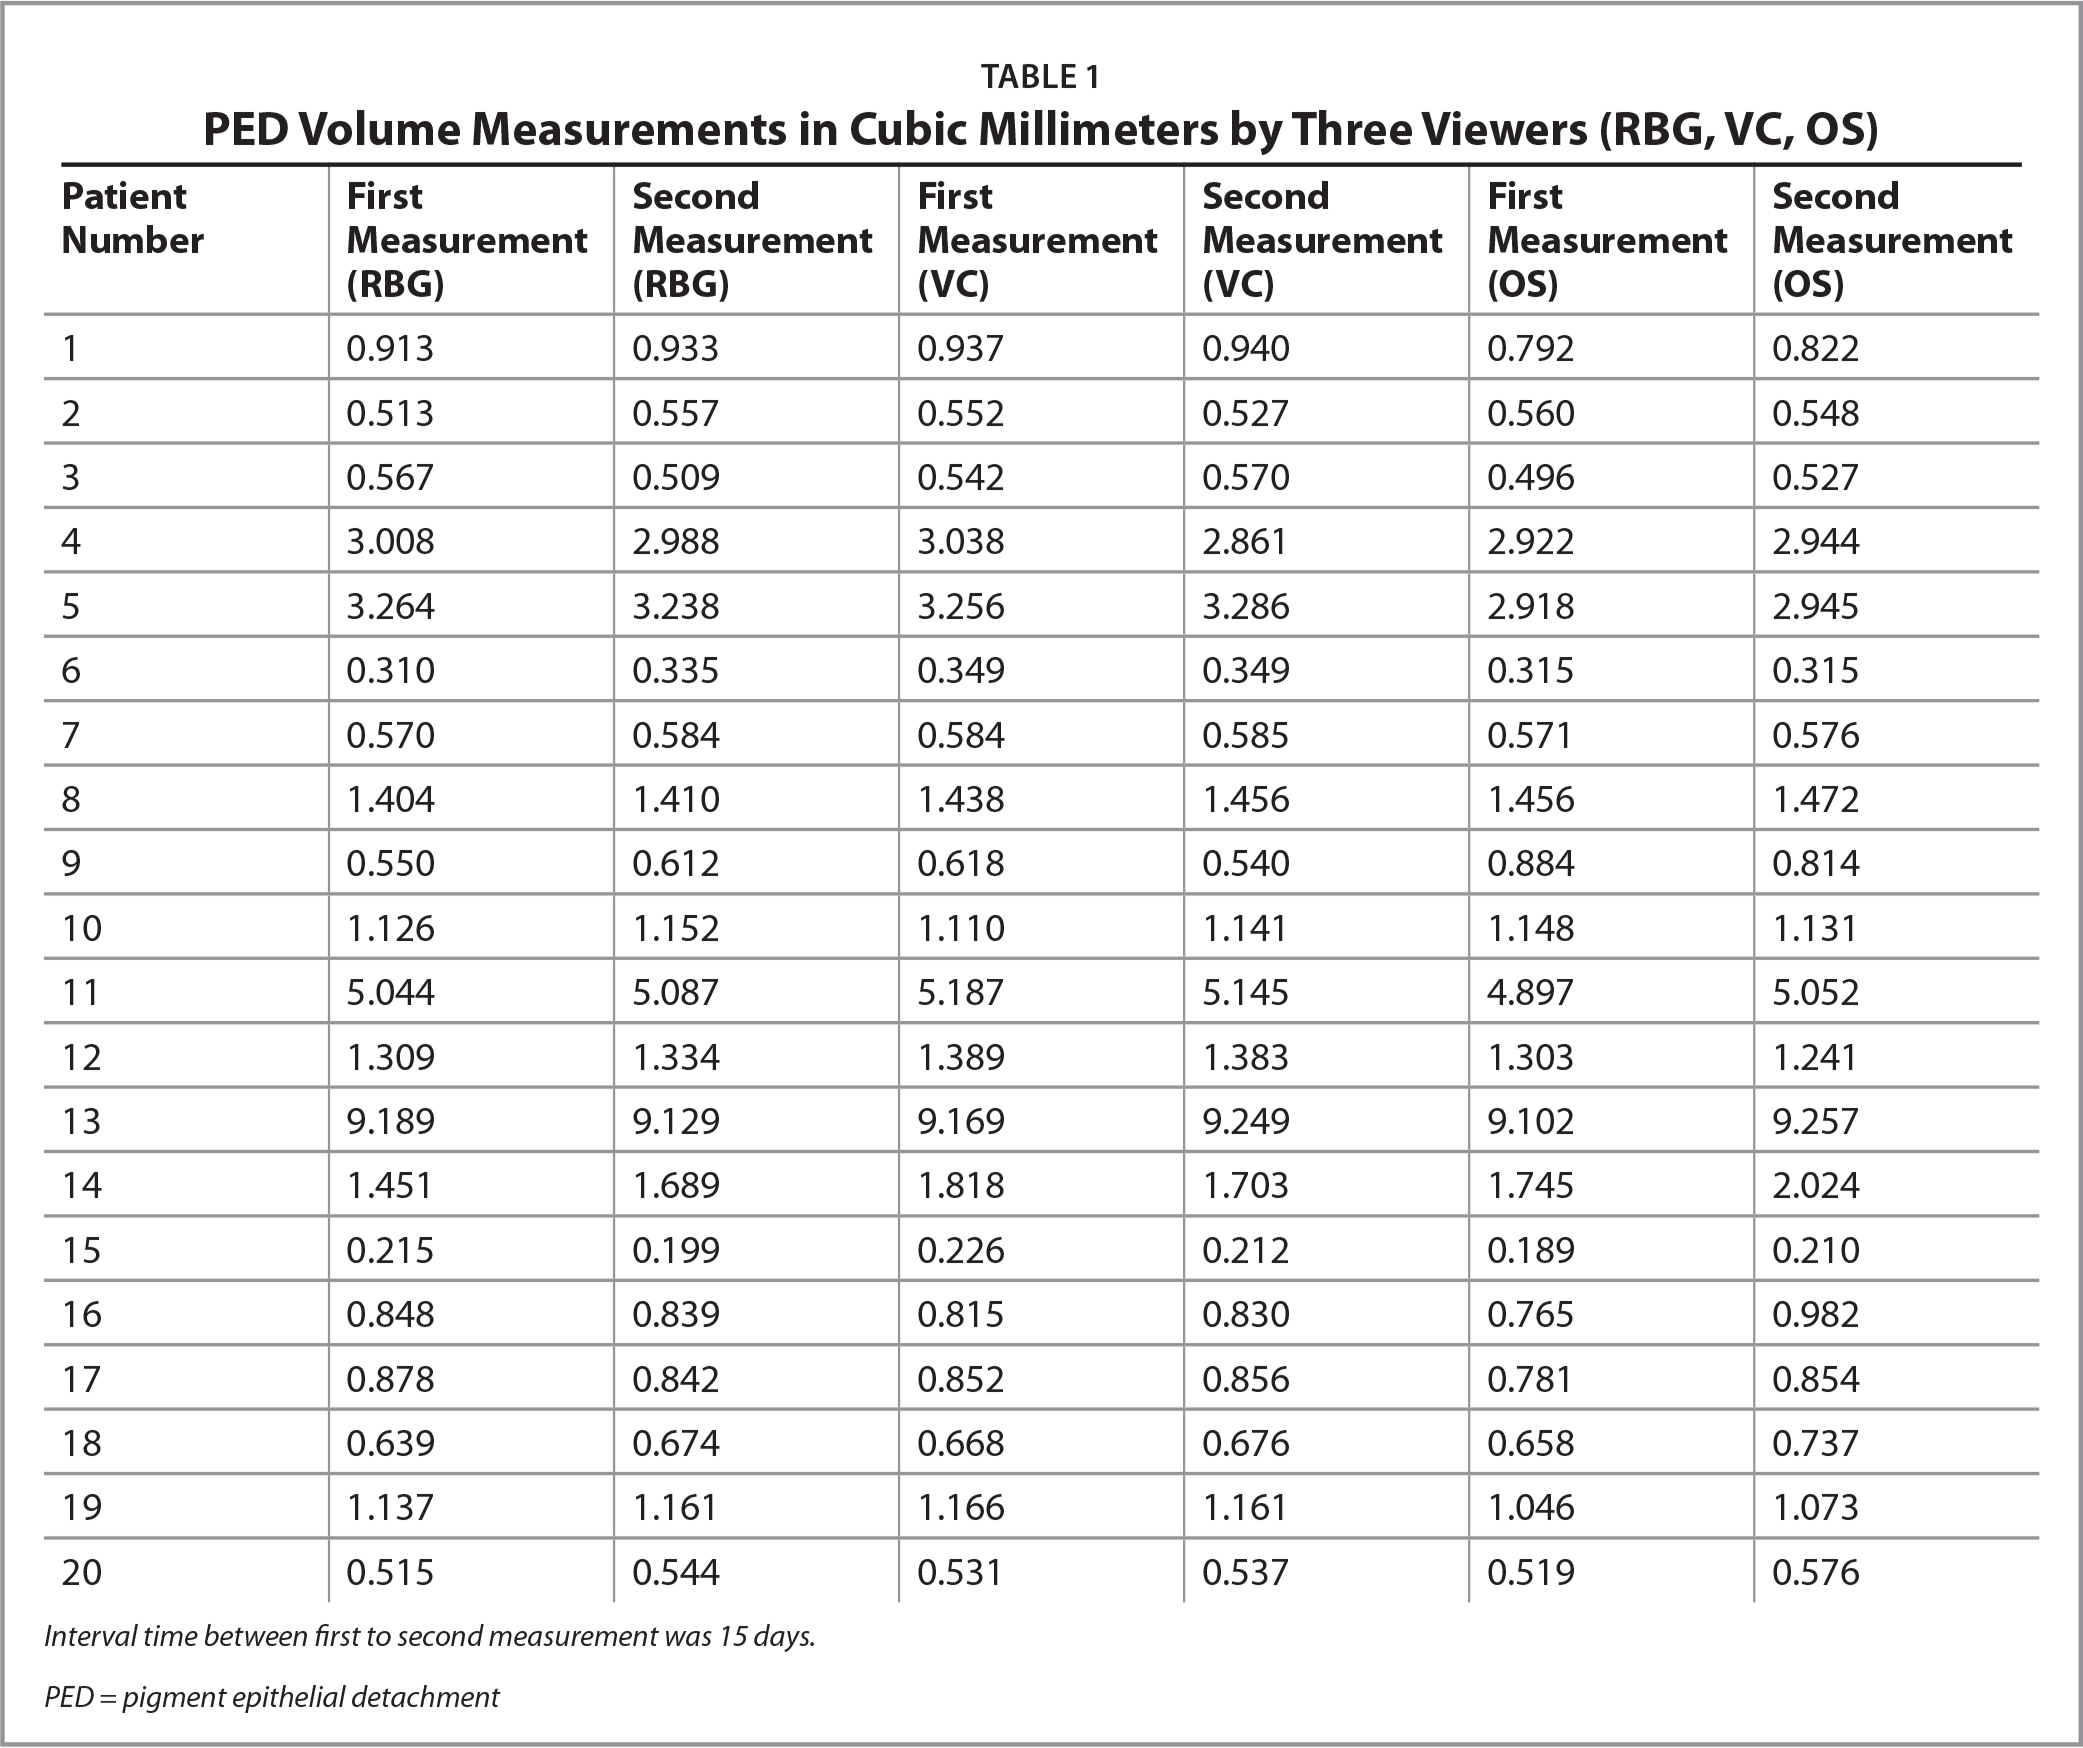 PED Volume Measurements in Cubic Millimeters by Three Viewers (RBG, VC, OS)